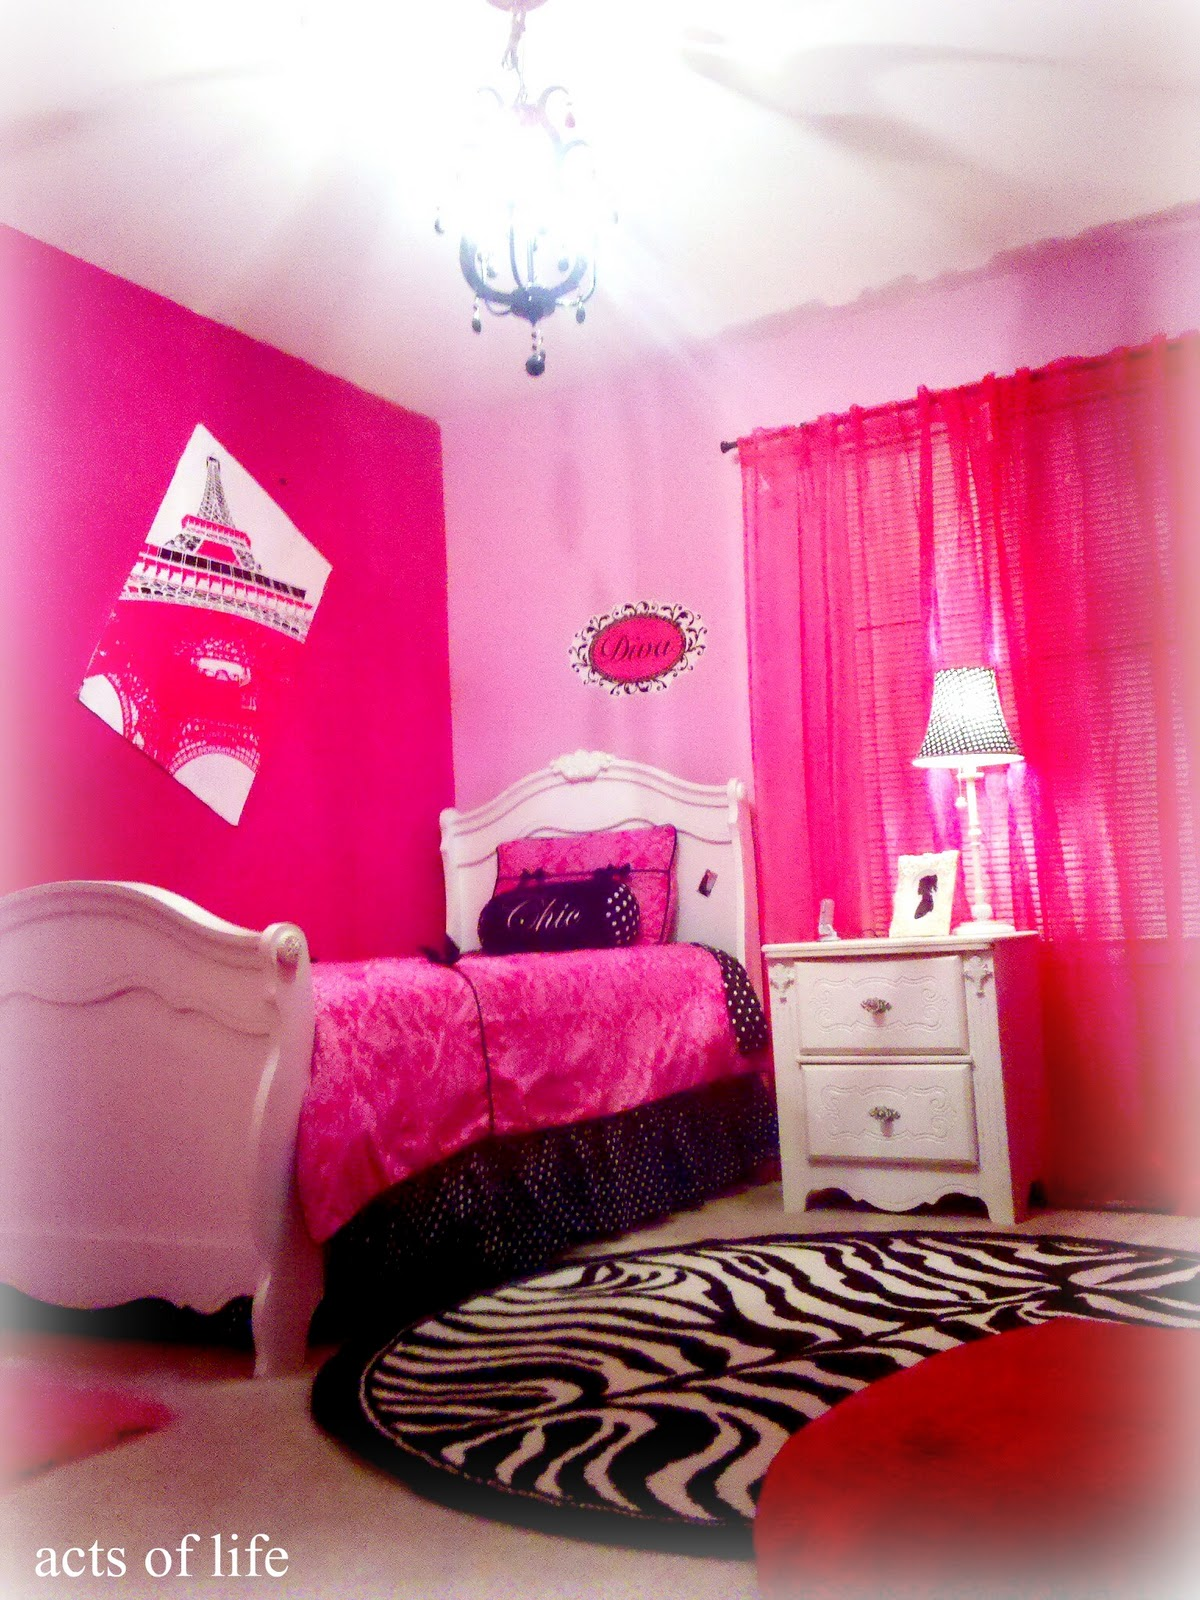 Acts Of Life Hot Pink Bedroom! My Daughters Bedroom Project